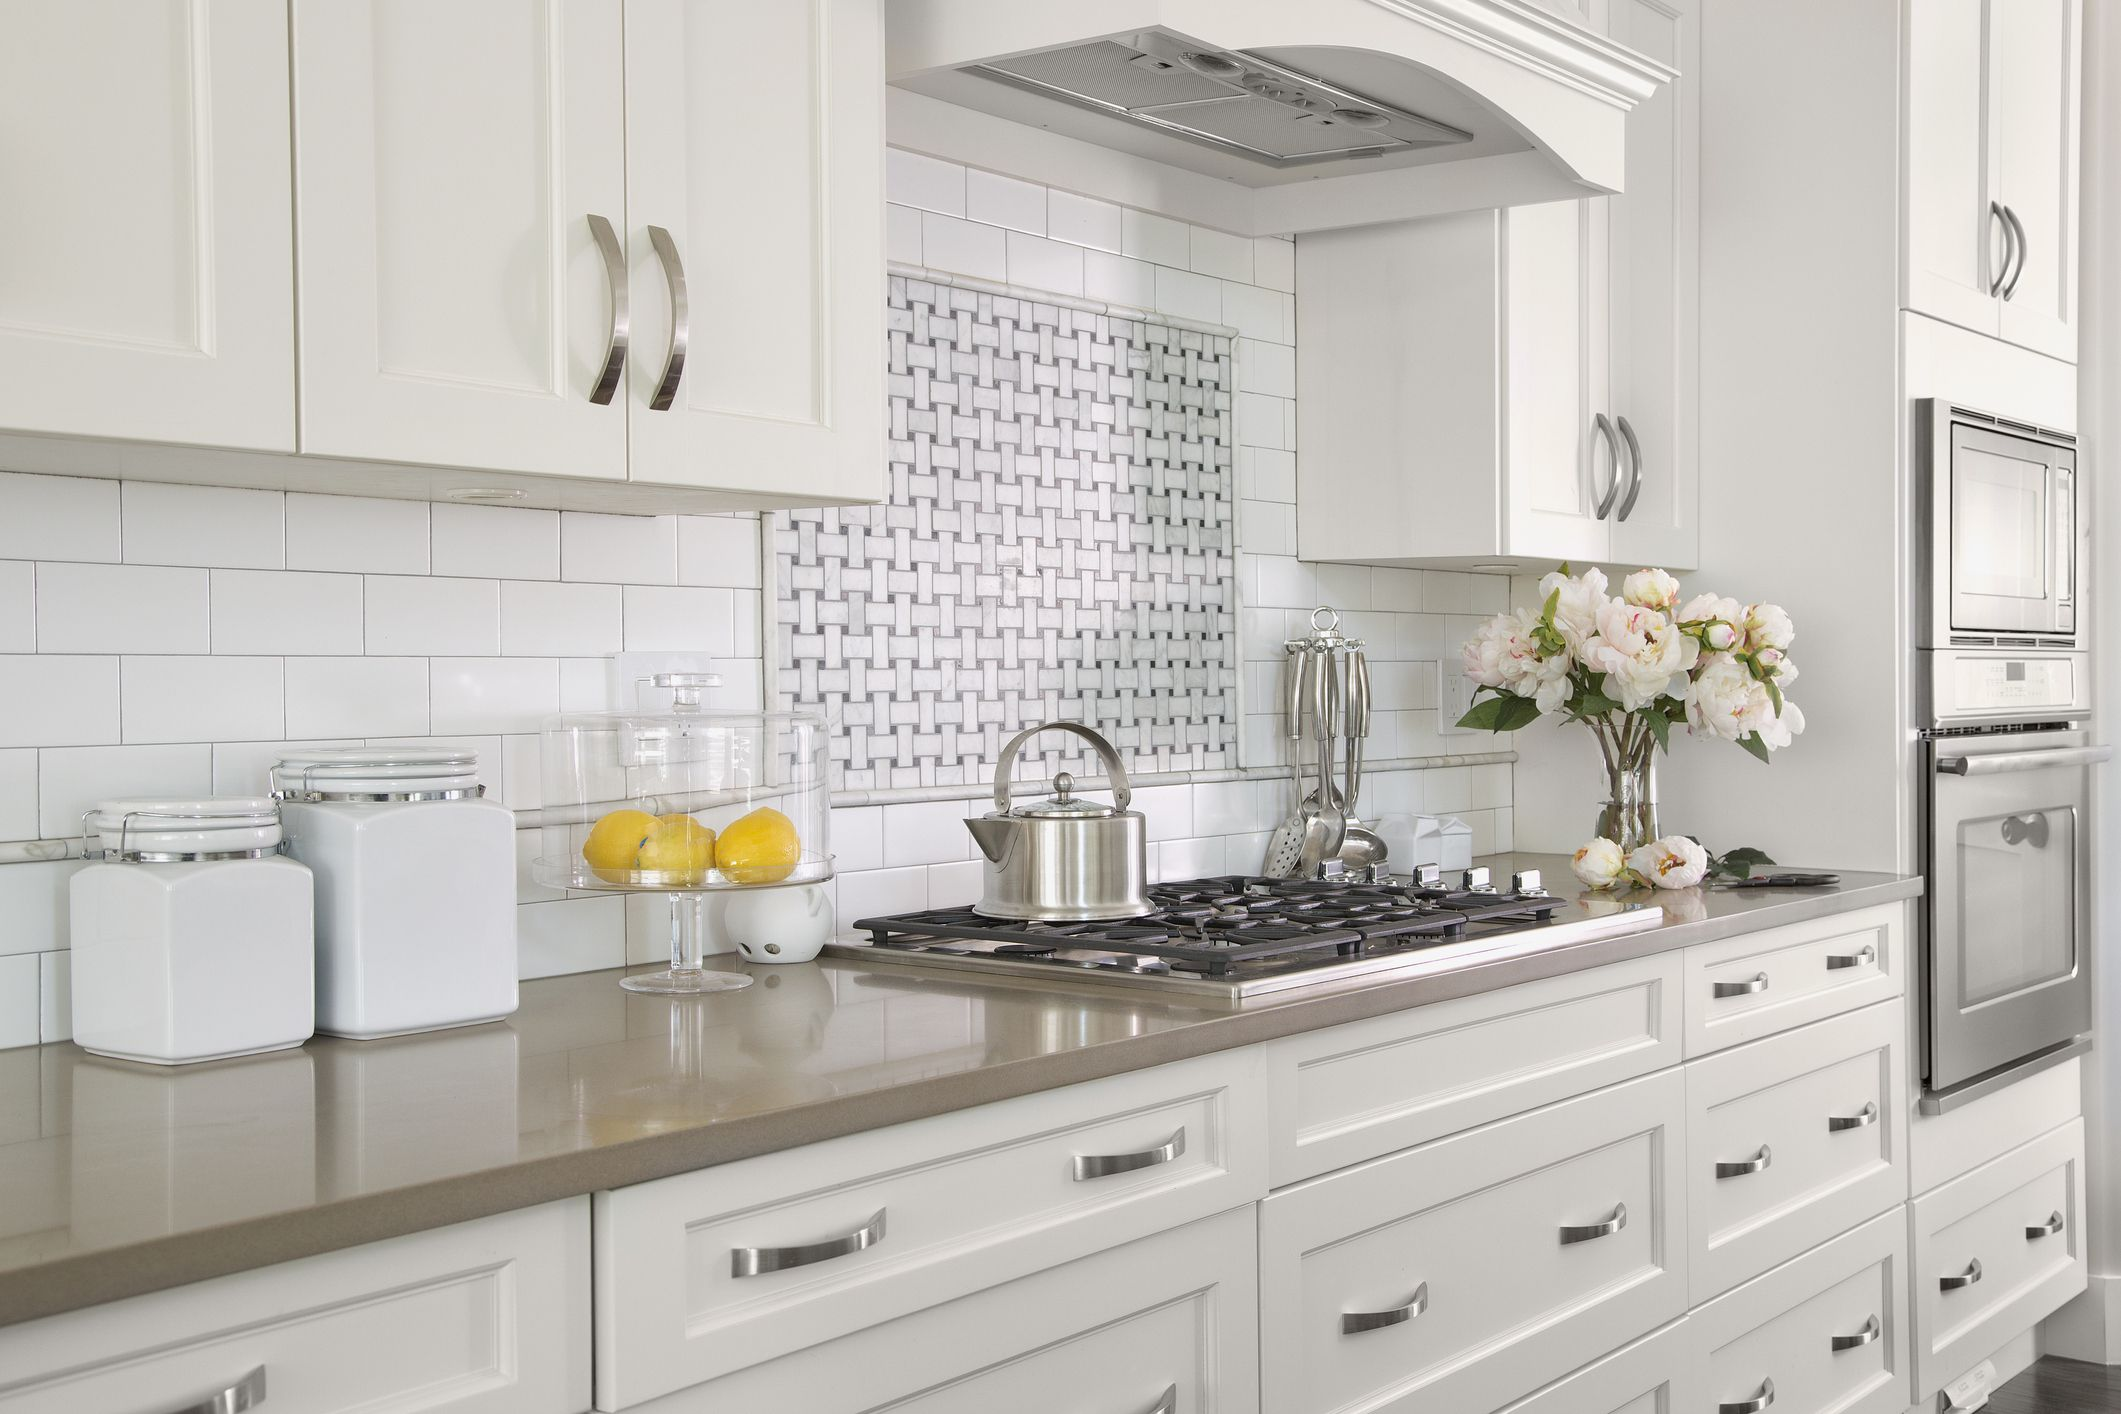 How to Choose the Best Cabinet Doors for Your Kitchen